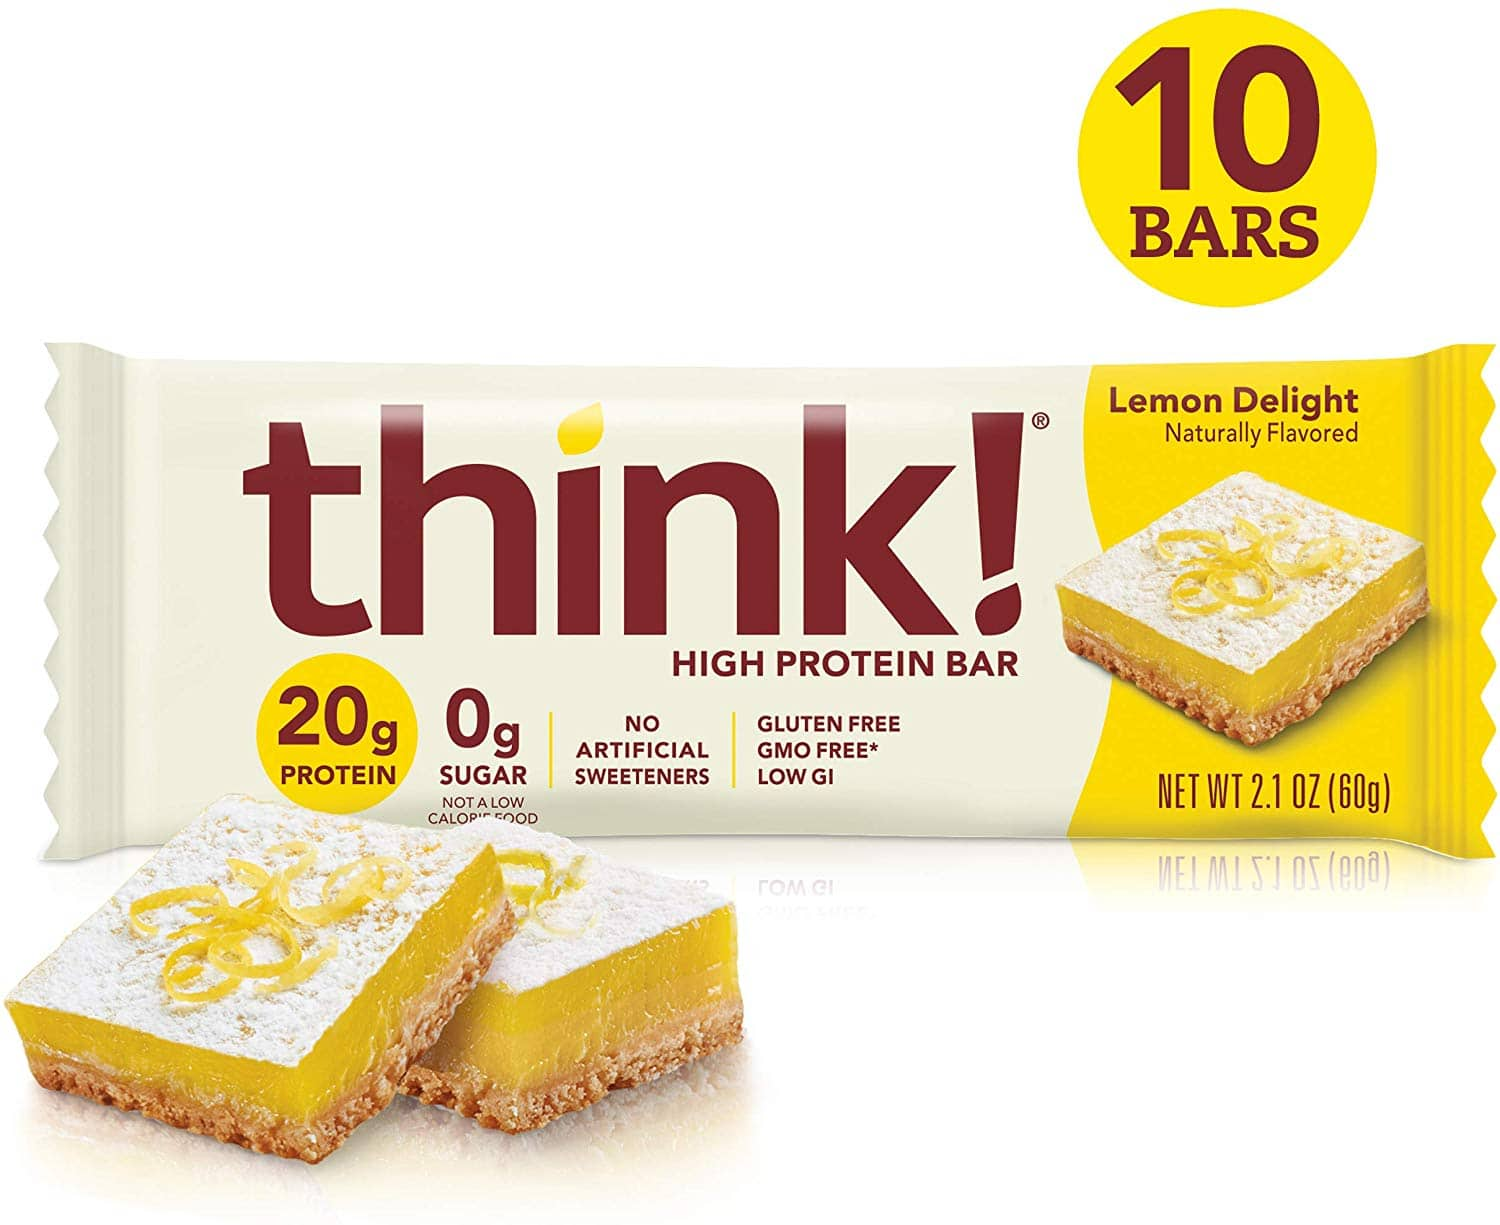 10-Count 2.1oz. think! High Protein Bars (Lemon Delight) $7.70 w/ S&S + Free Shipping via Amazon